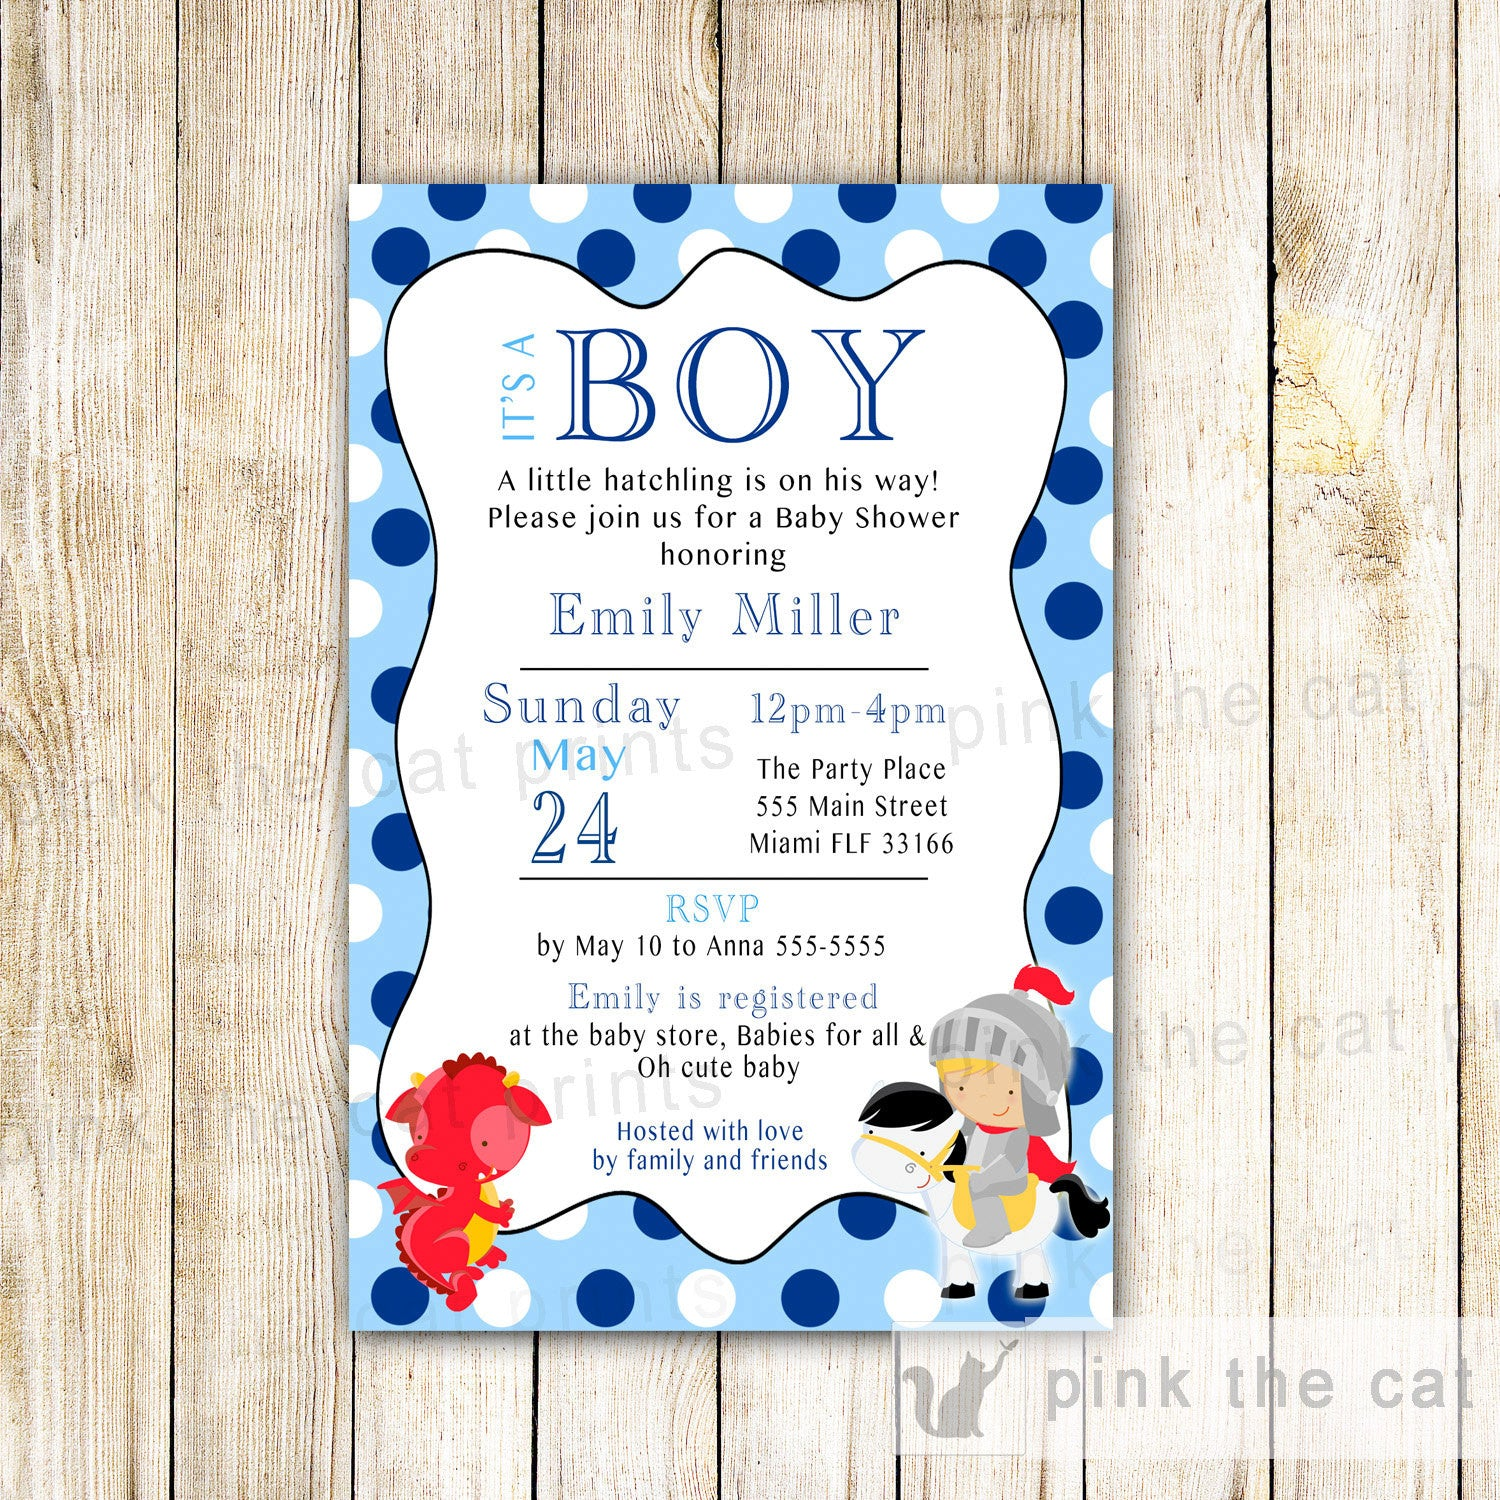 Dragon Knight Invitation Baby Boy Shower Red Blue – Pink The Cat